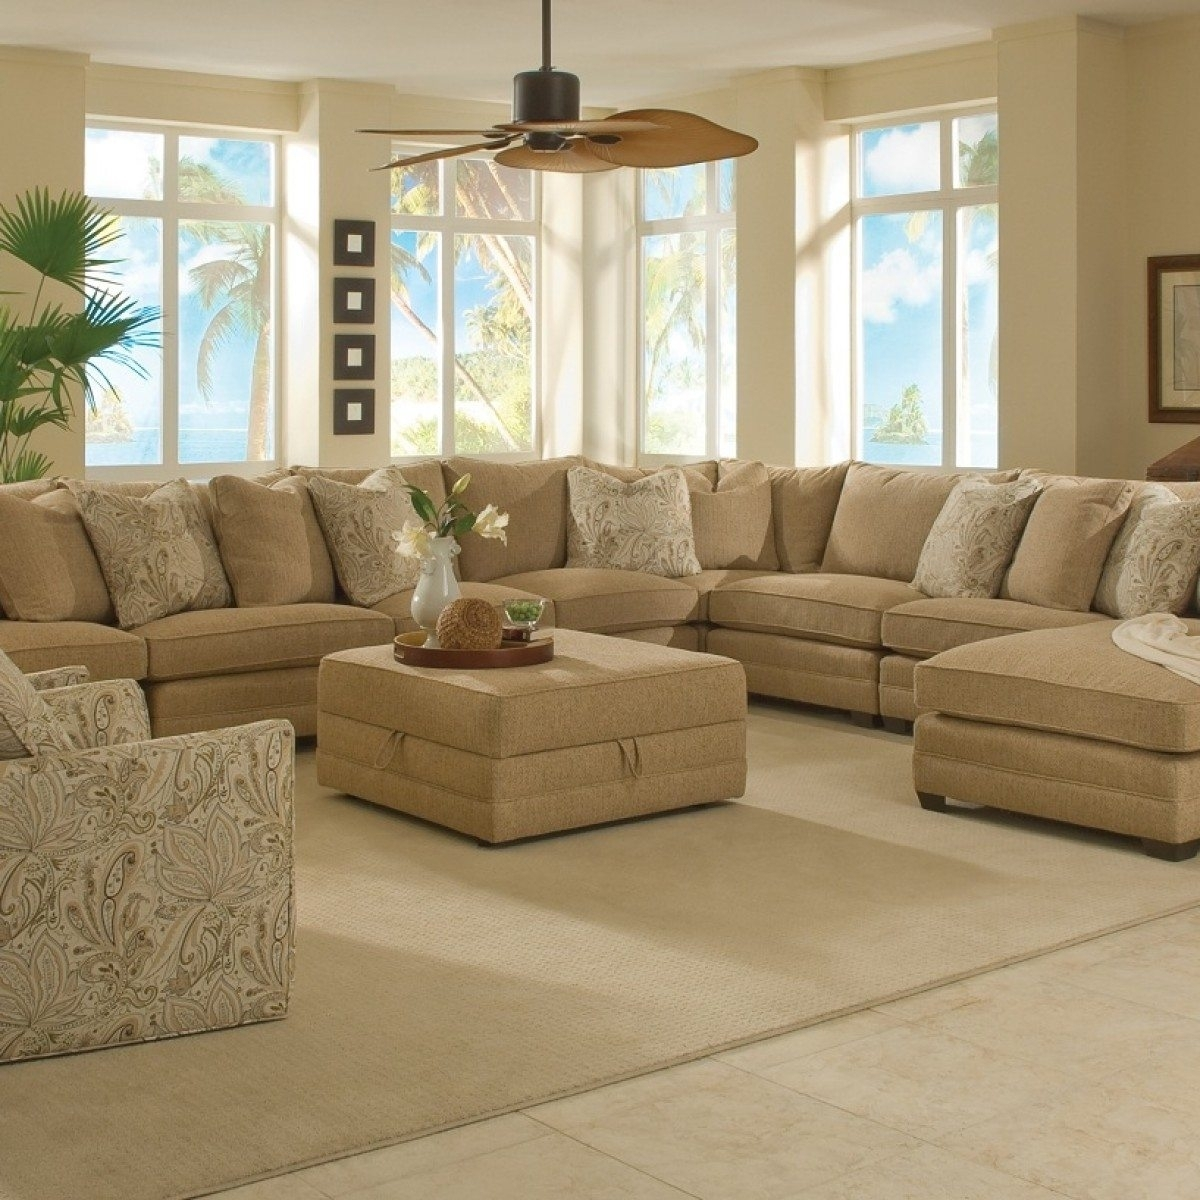 Sectional Sofa Design: Large Sofa Sectionals Chaise Bed Extra In Couches With Large Ottoman (View 10 of 10)